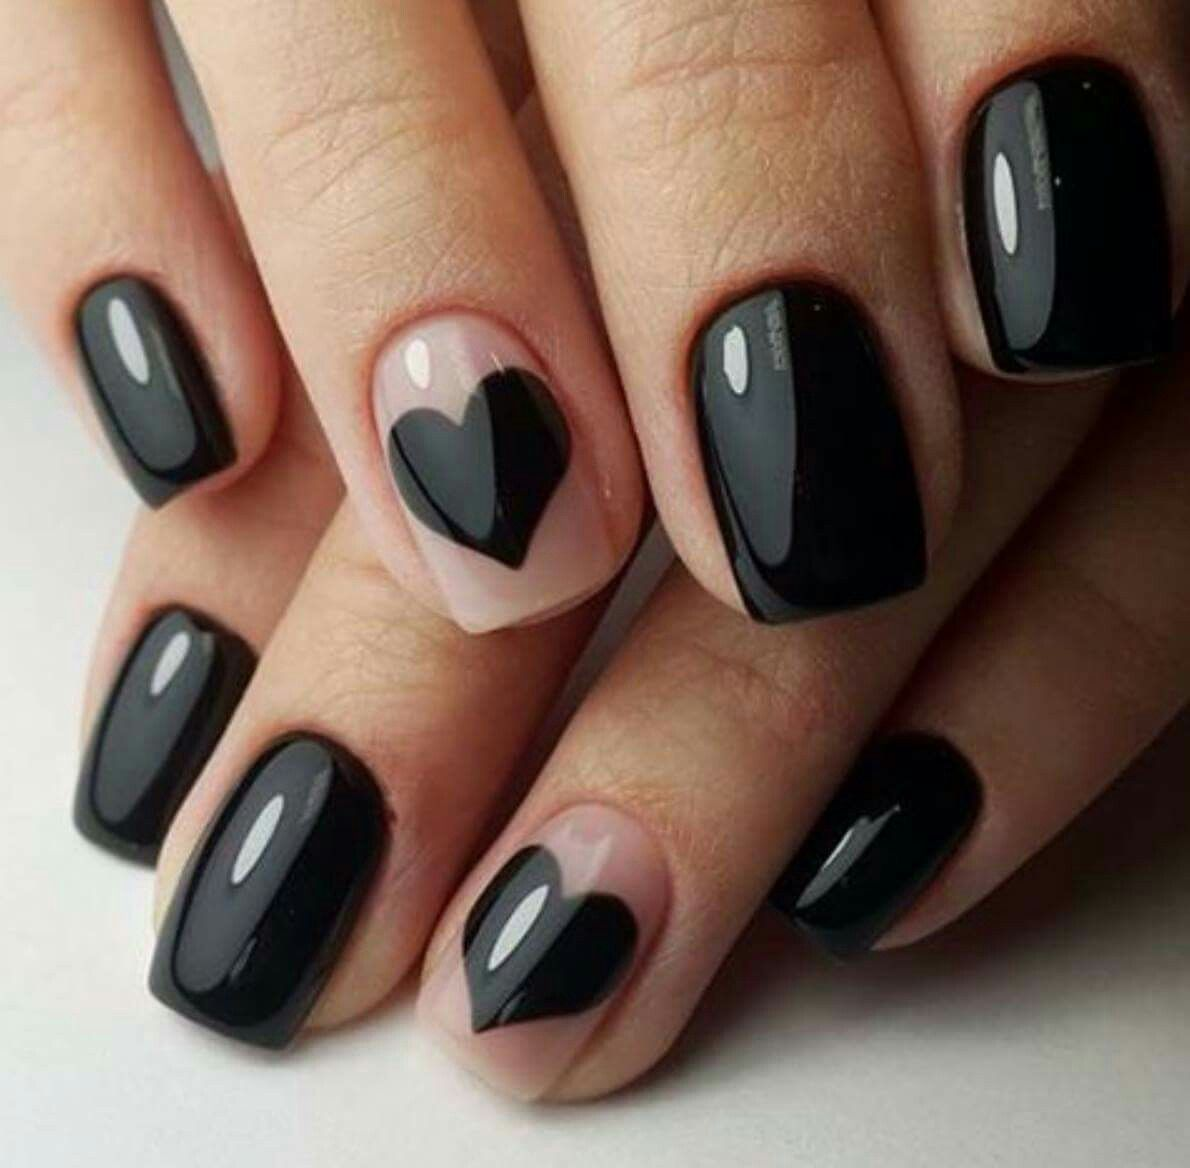 Black beauty nails with black hearts on one finger on each hand